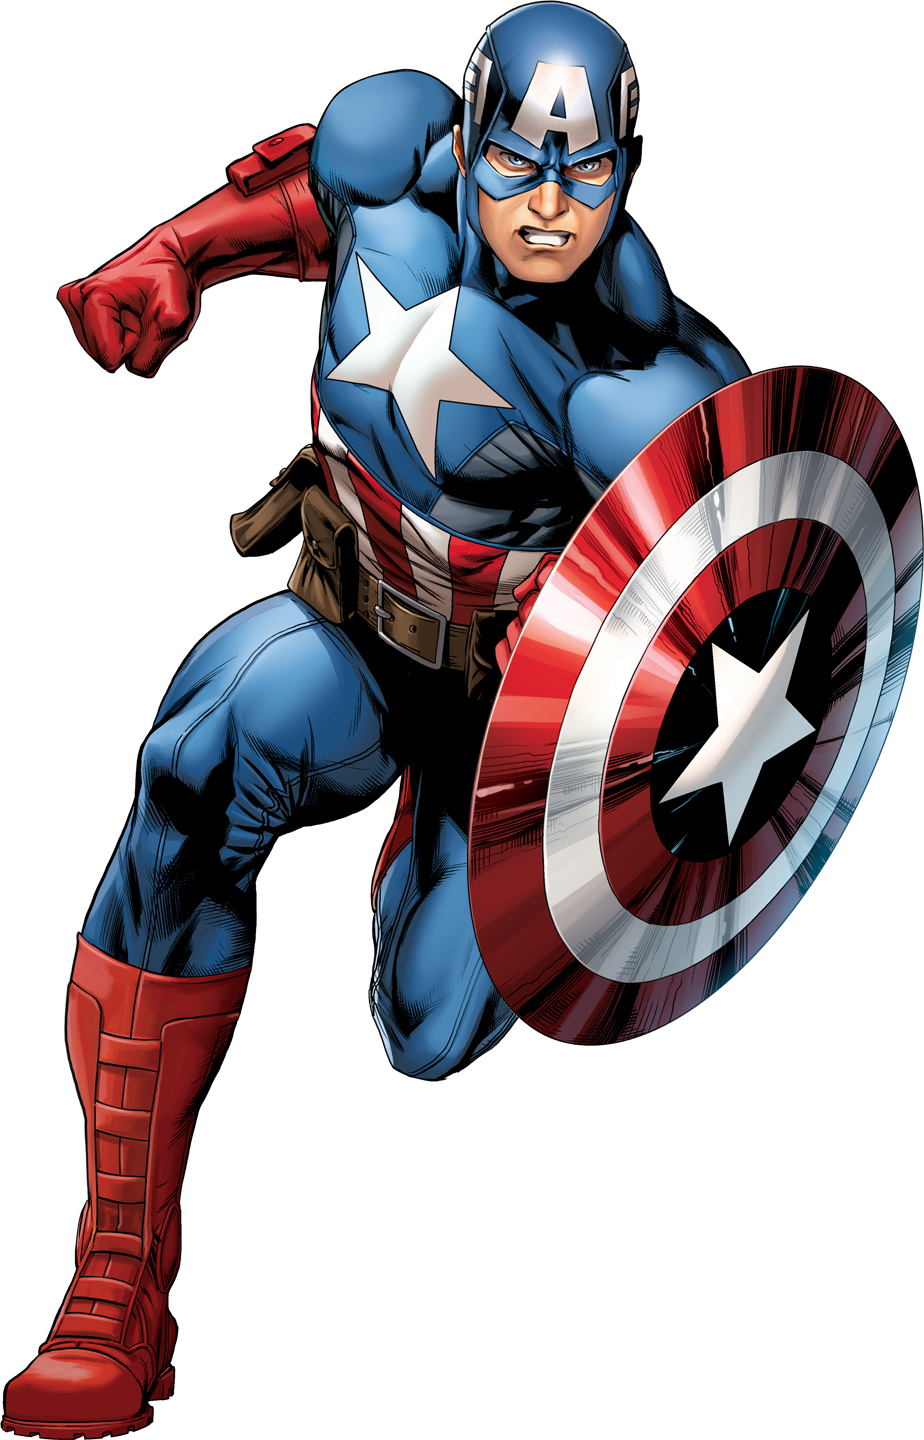 svg free stock Image captain america png. Avengers clipart action figure.